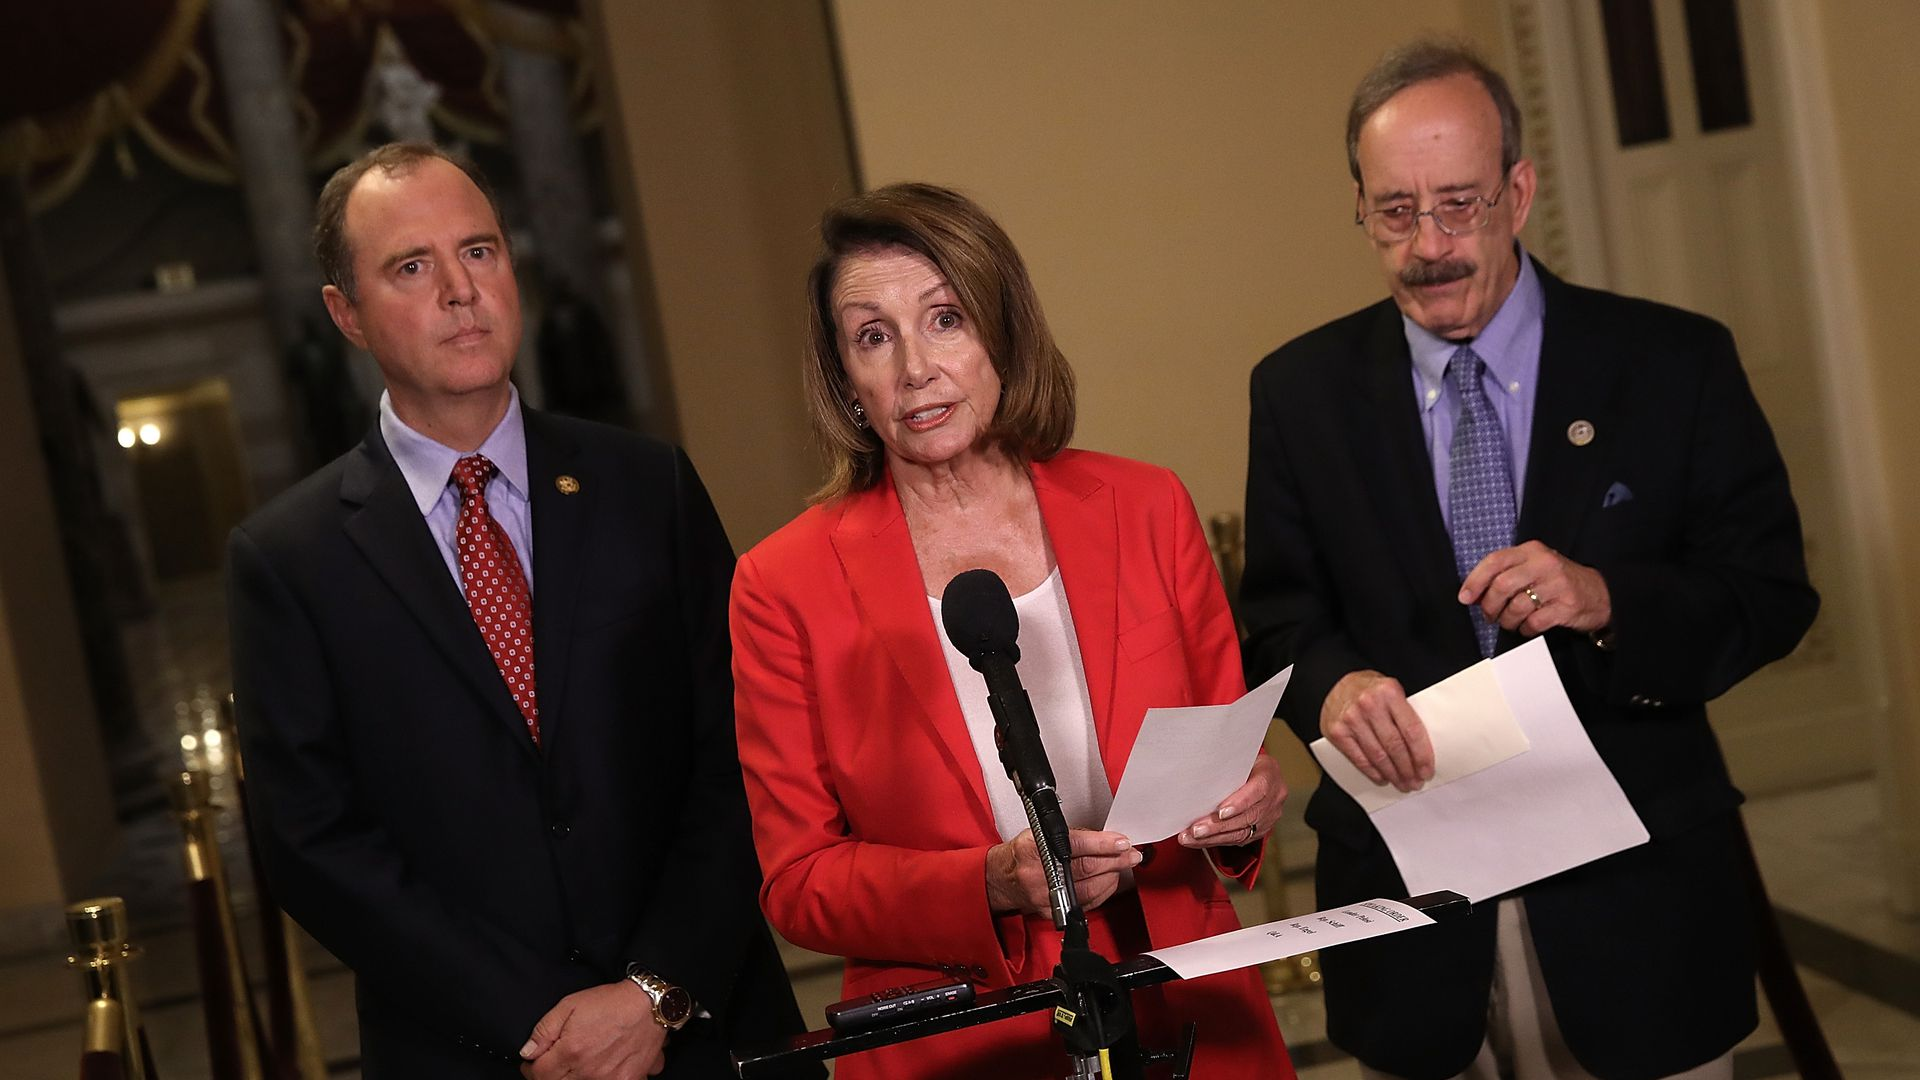 House Minority Leader Nancy Pelosi speaks at a press conference at the U.S. Capitol